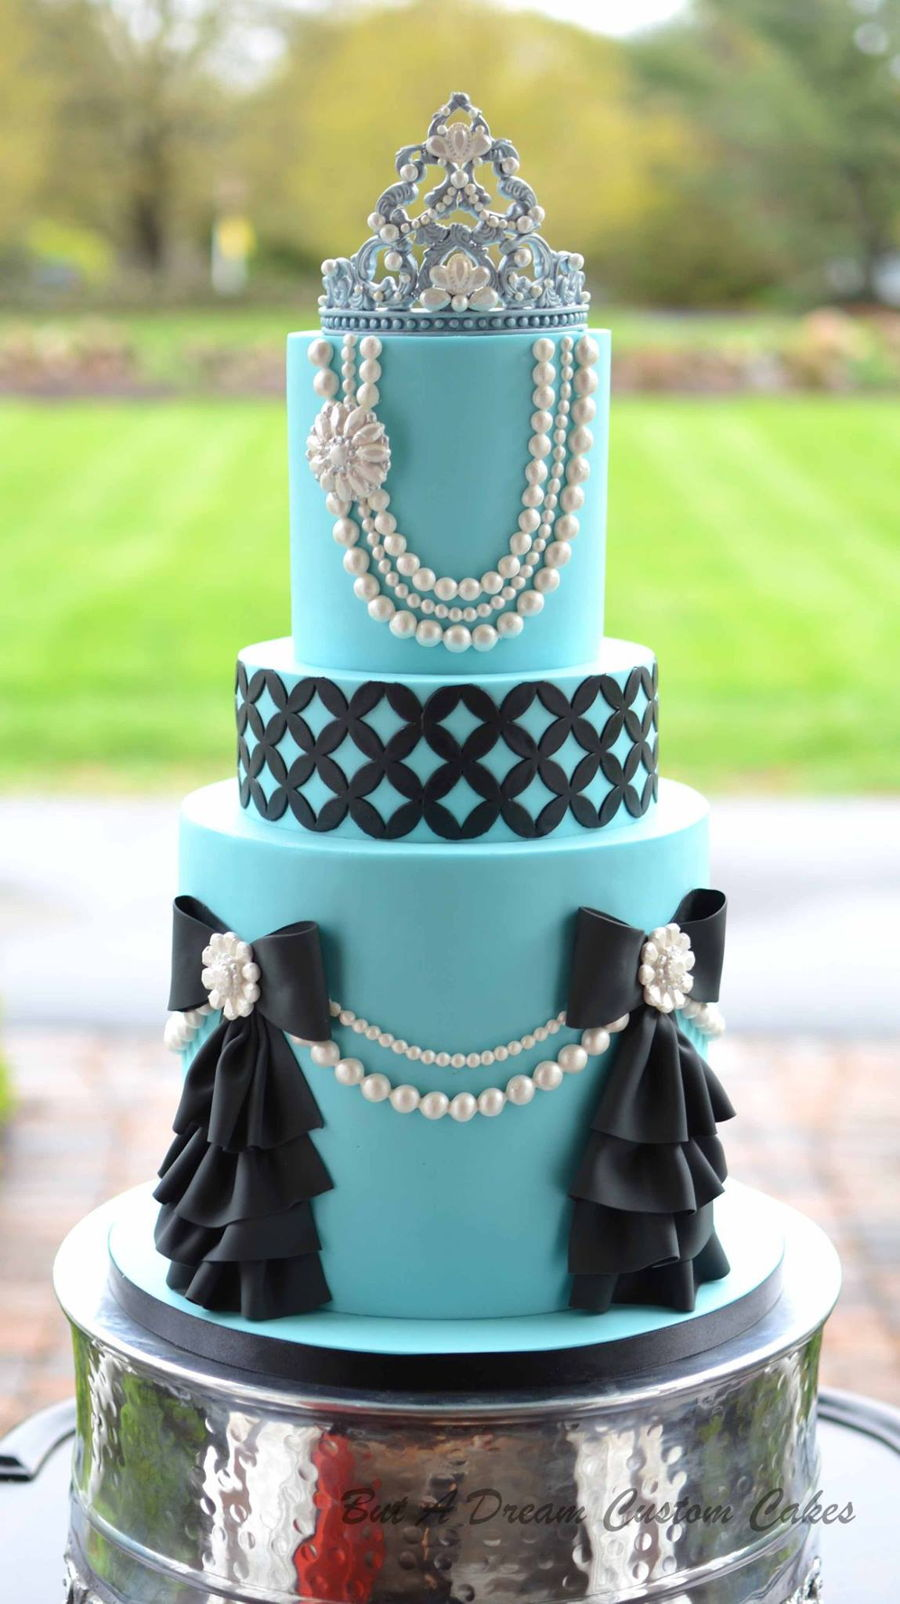 17 Best images about Tiffany Themed Cakes on Pinterest ...  Tiffany Bridal Shower Cakes